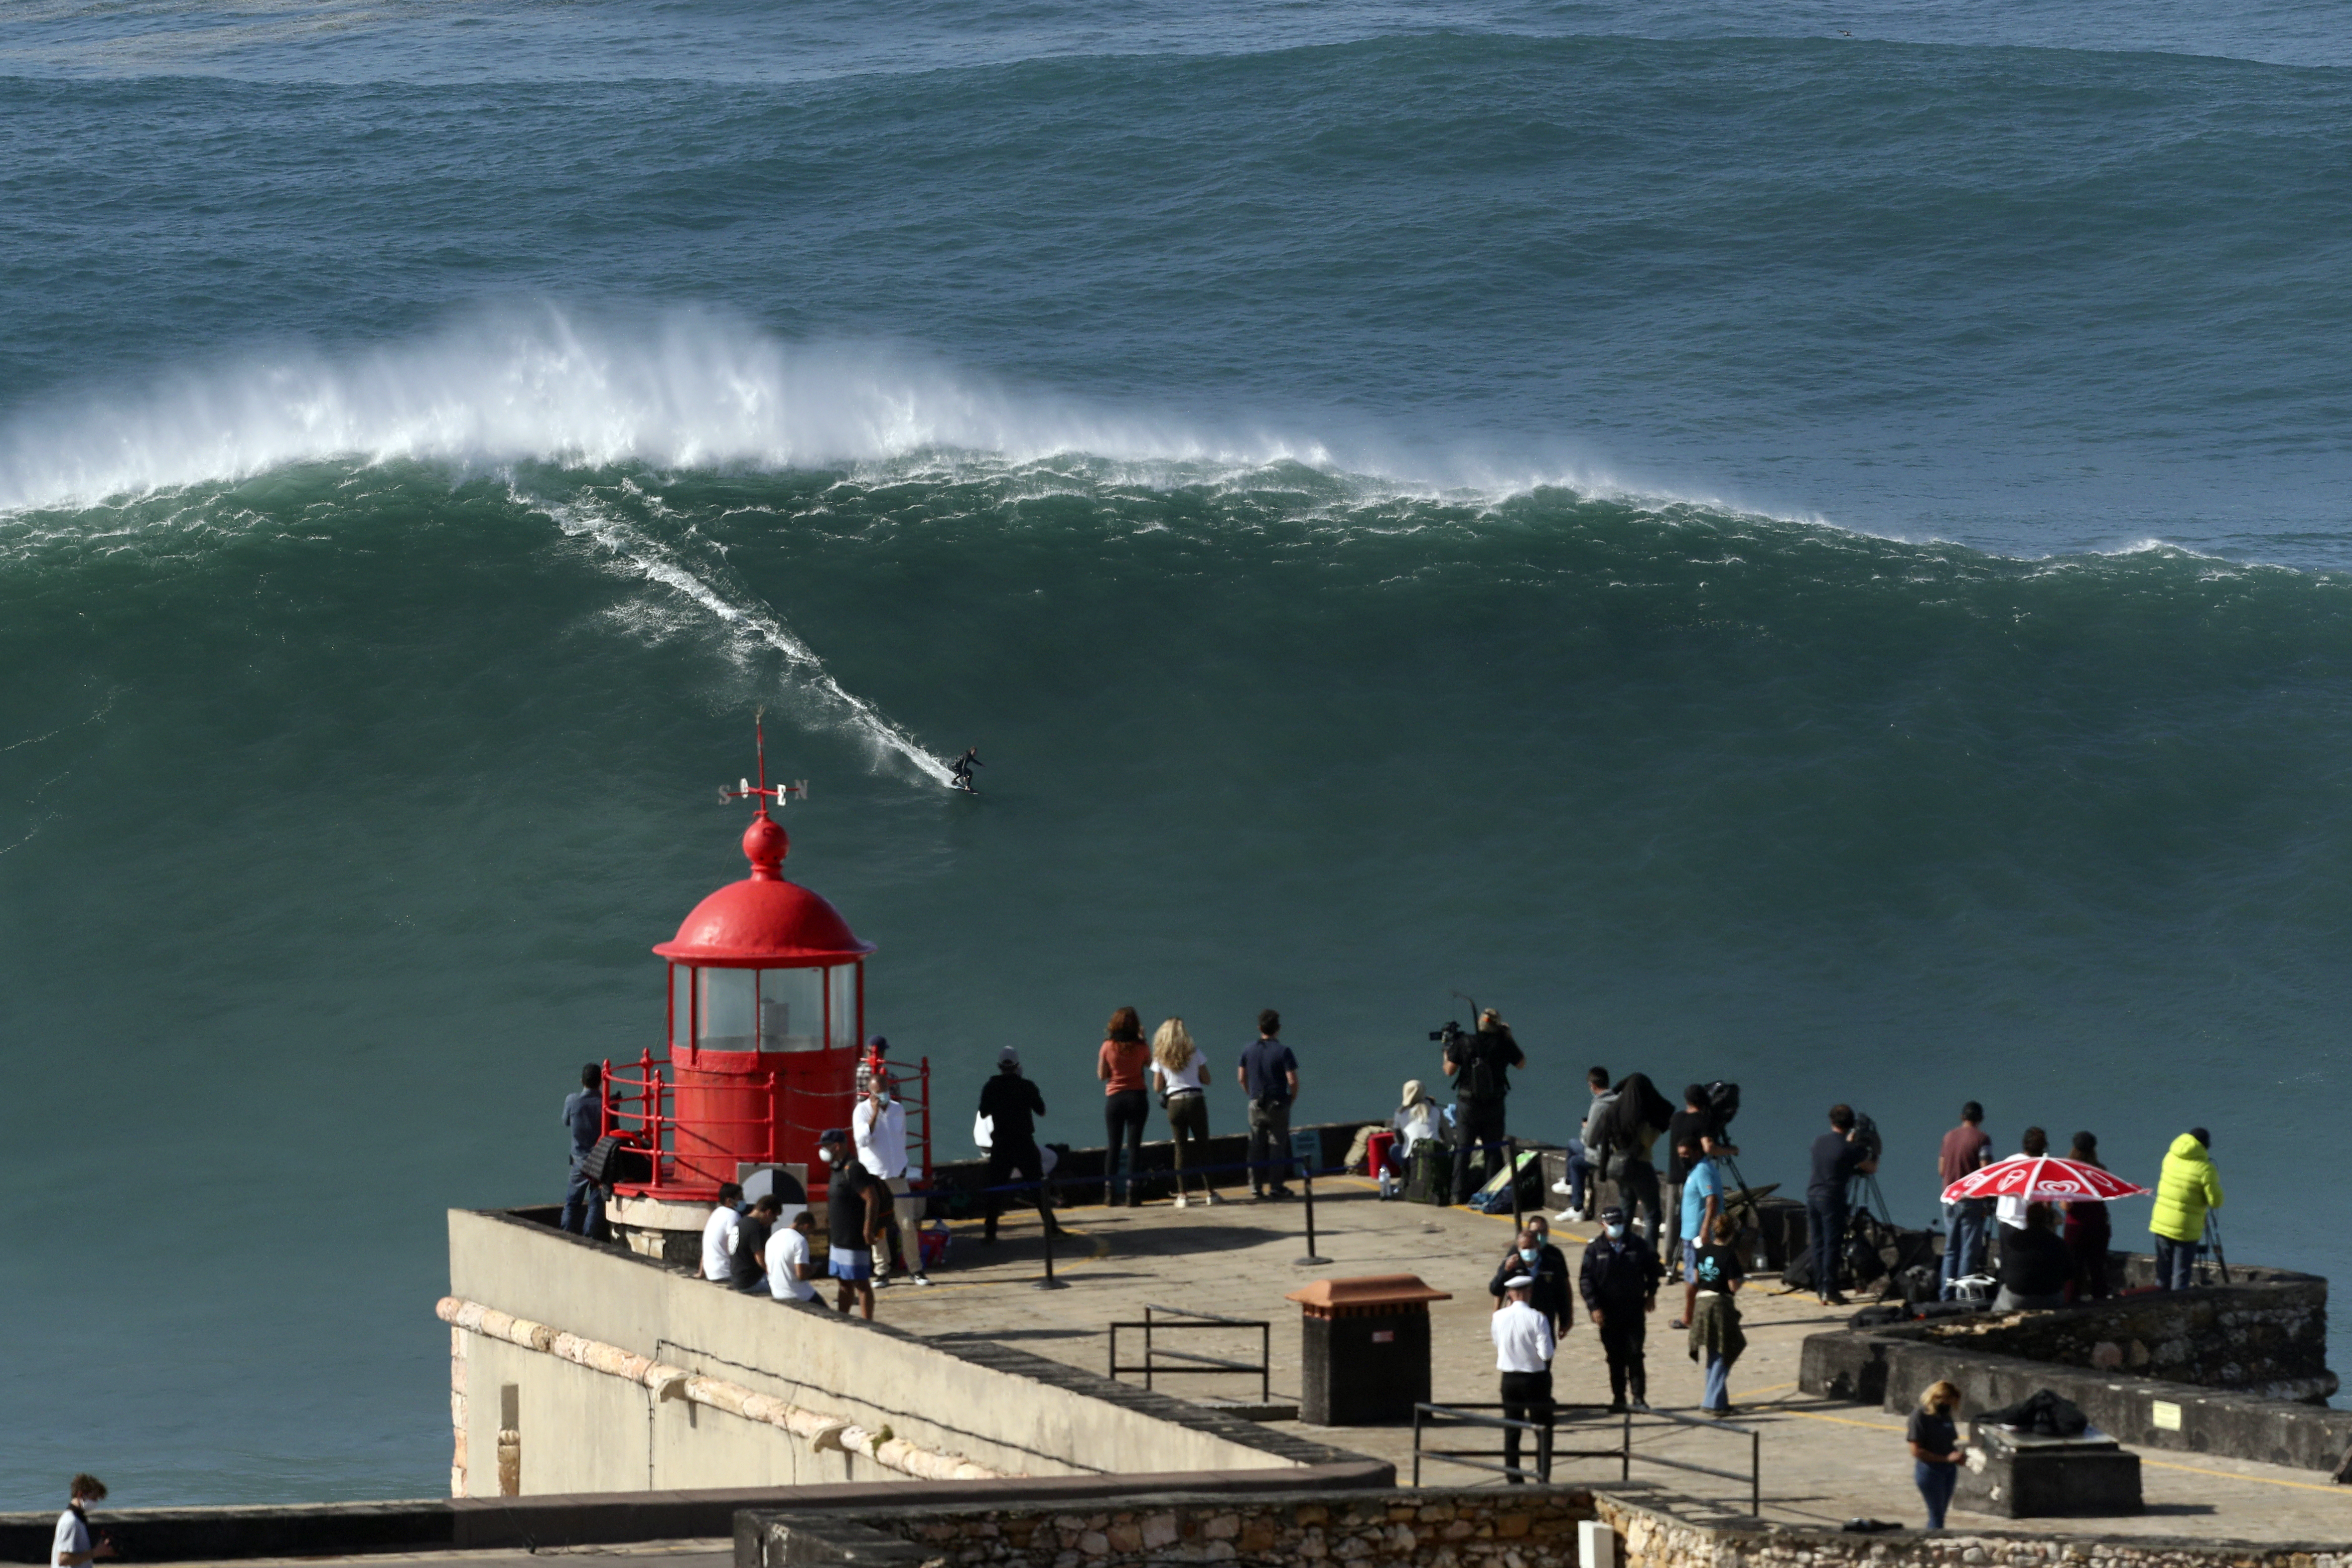 People on the top of the lighthouse watch a surfer ride a wave during a tow surfing session at Praia do Norte or North Beach in Nazare, Portugal, Thursday, Oct. 29, 2020. A big swell generated earlier in the week by Hurricane Epsilon in the North Atlantic, reached the Portuguese west coast drawing big wave surfers to Nazare. (AP Photo/Pedro Rocha)